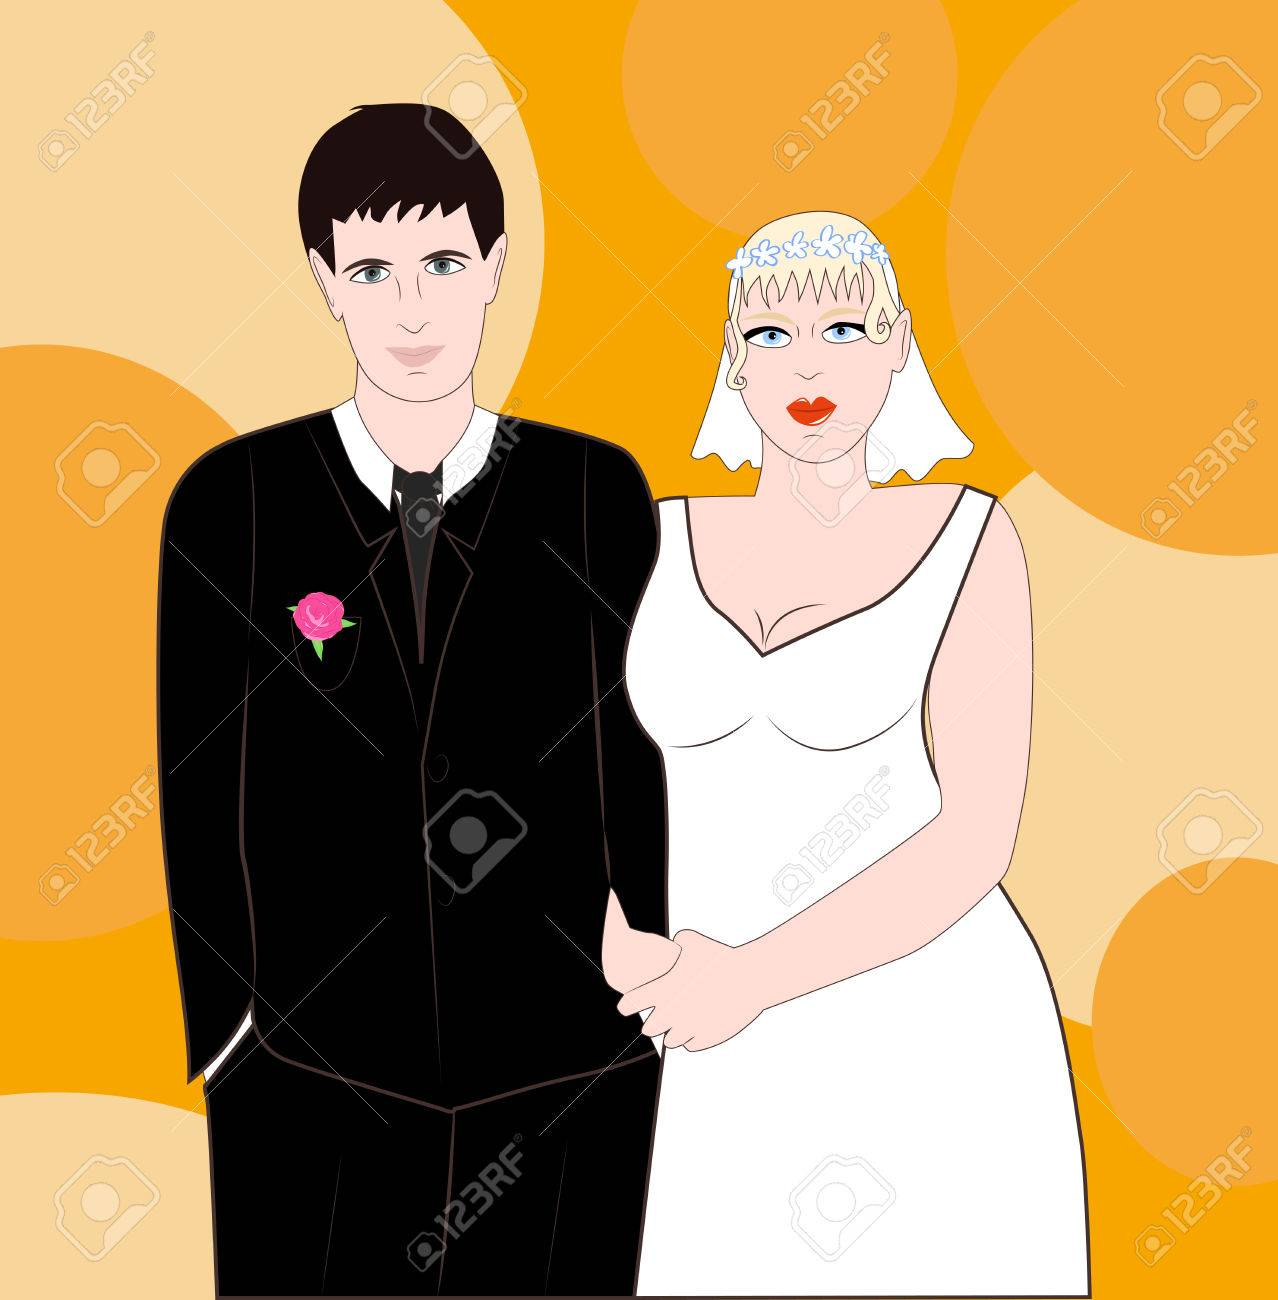 The Groom In A Suit And Chubby Bride In White Dress Royalty Free ...